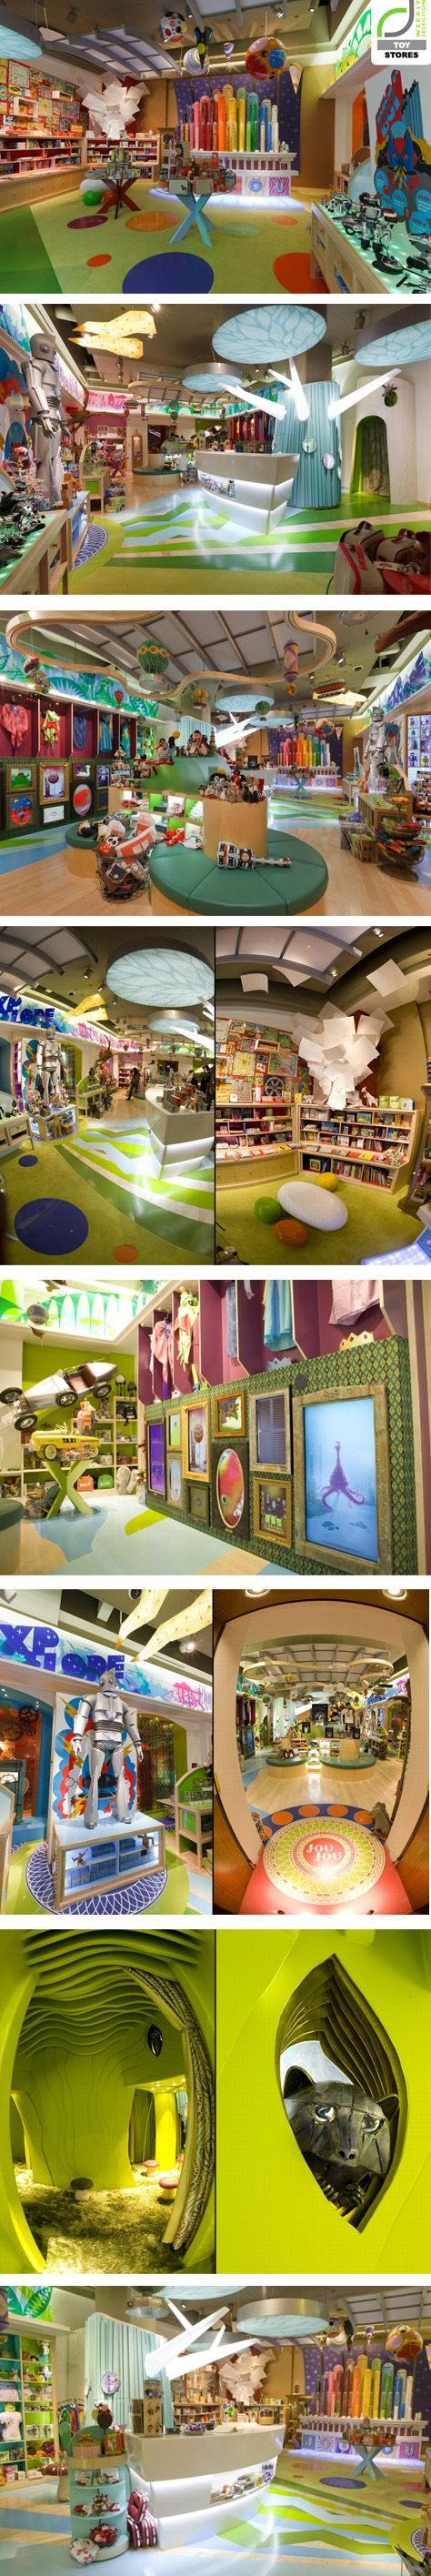 Jou Jou toy store by Watts Architects, Salt Lake City – Utah